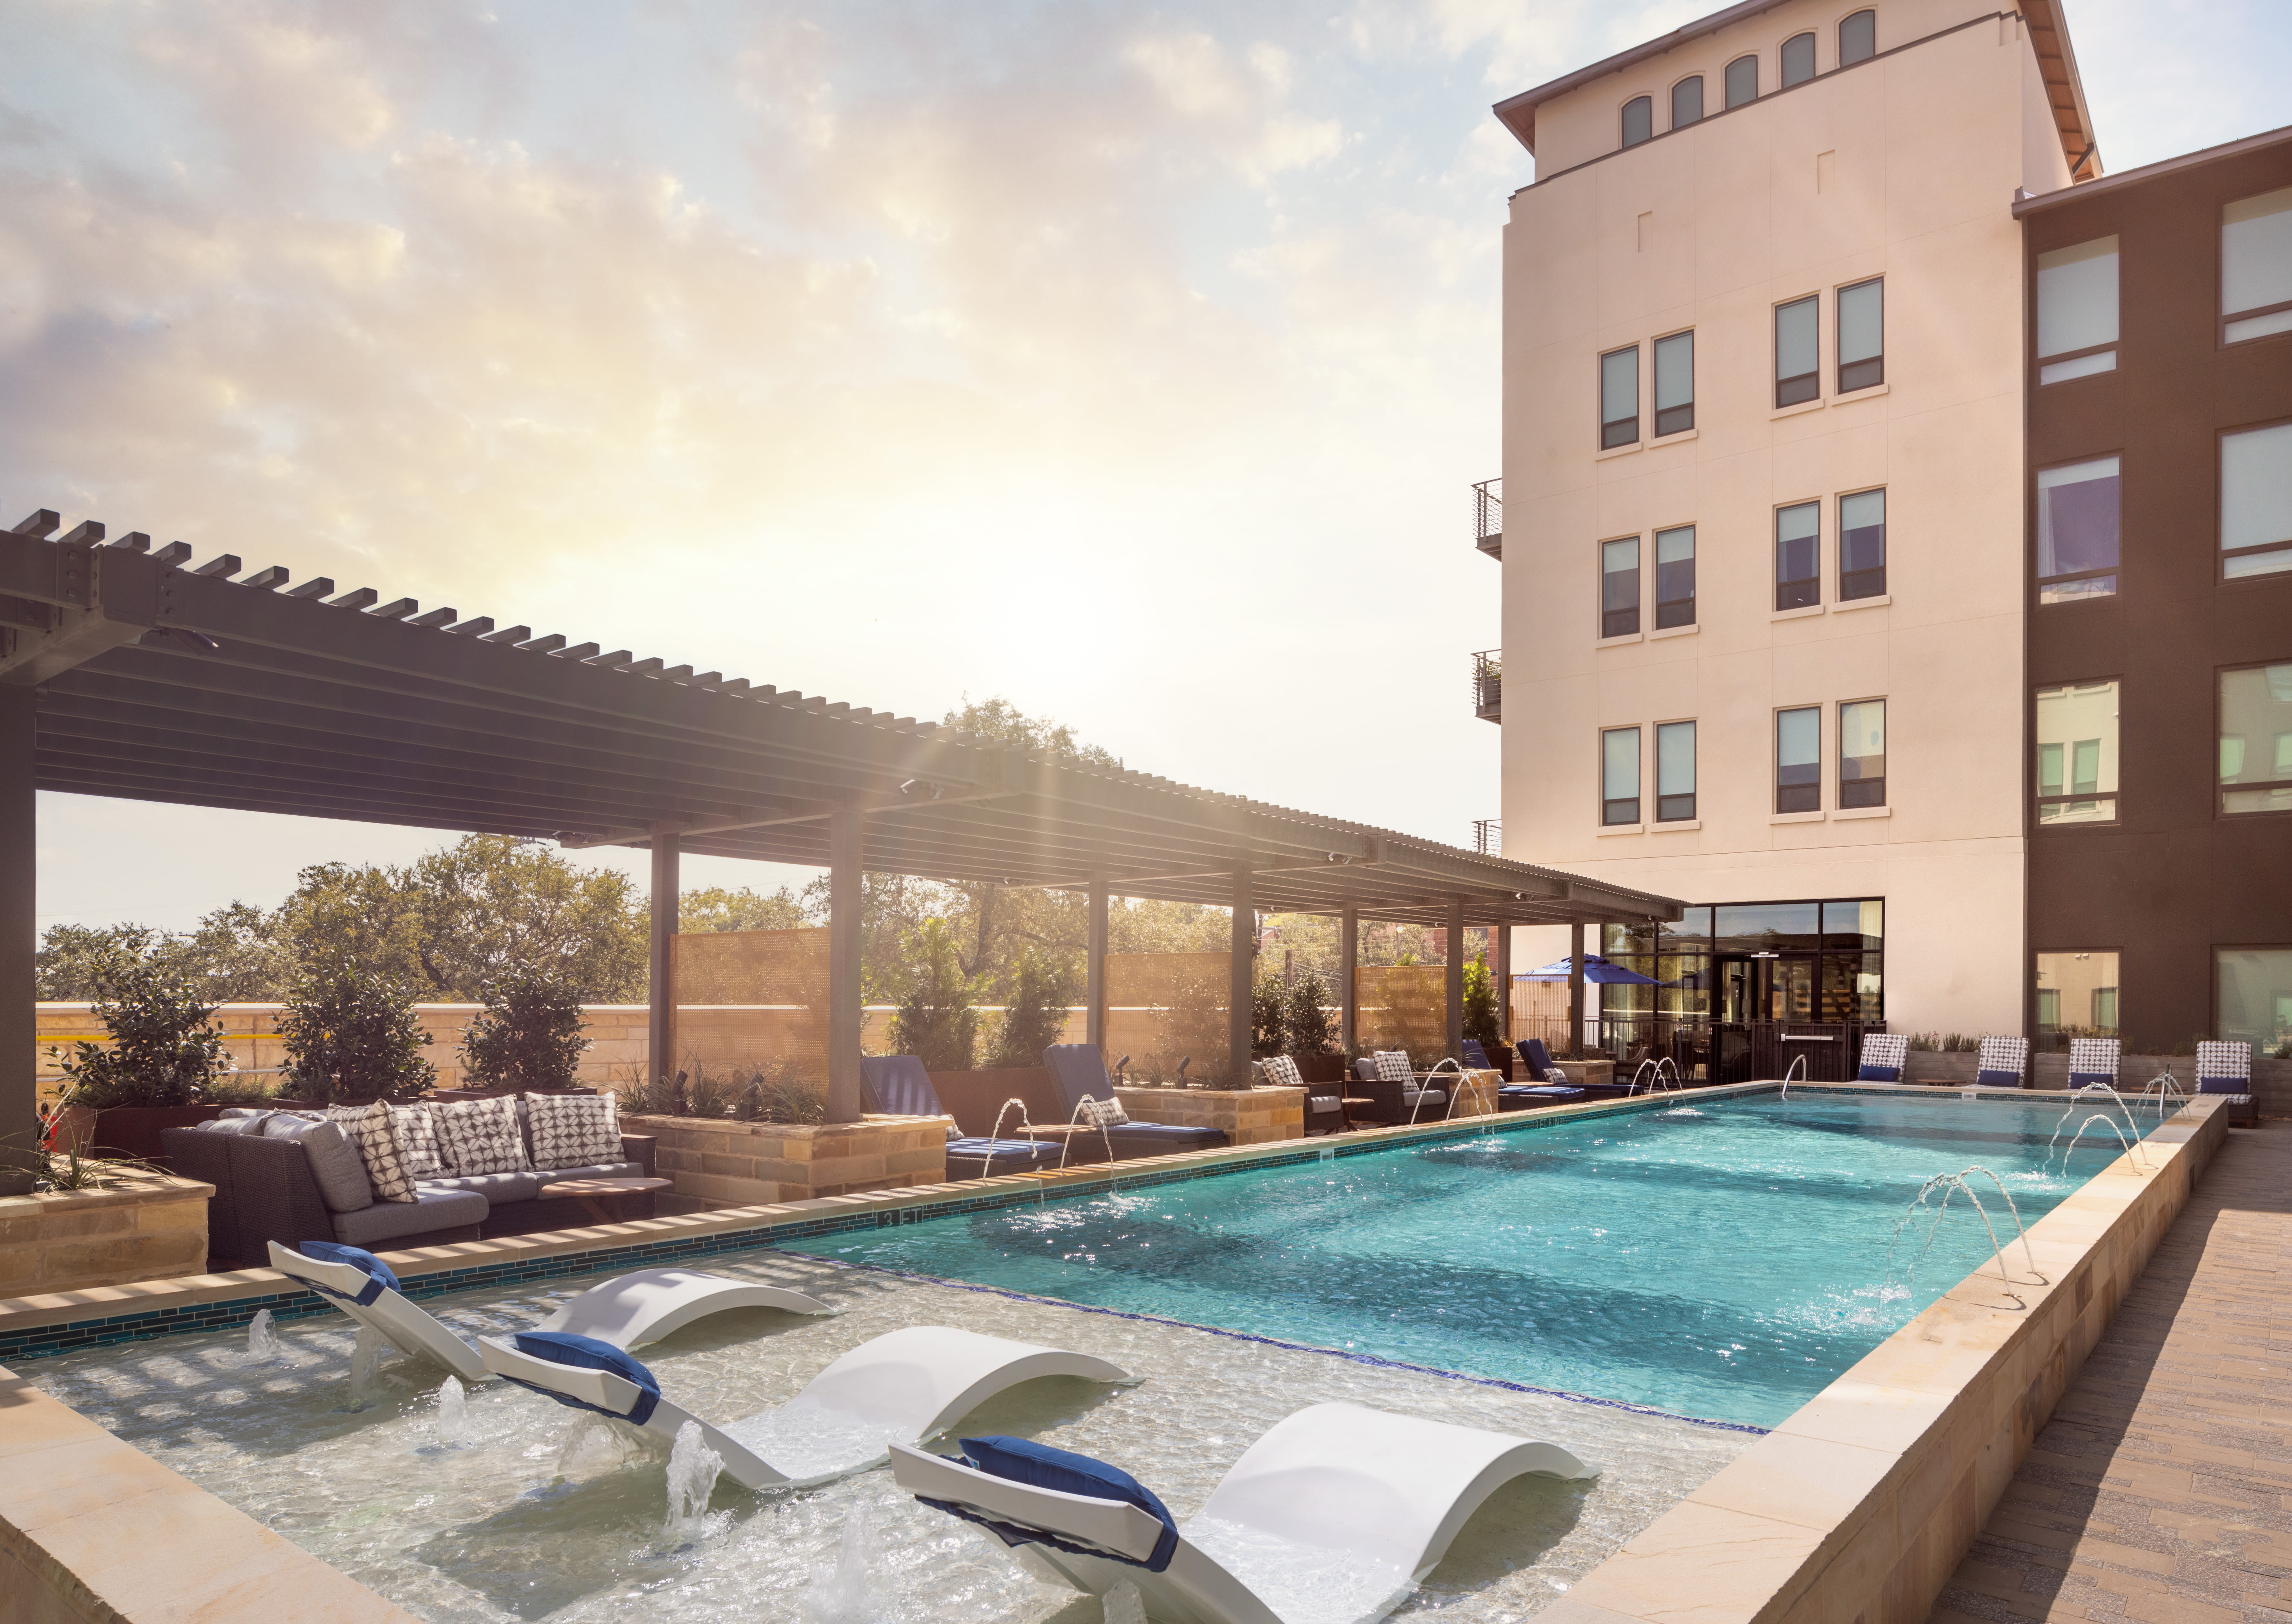 Sunset photo of the resort style pool at Magnolia Heights in San Antonio, Texas